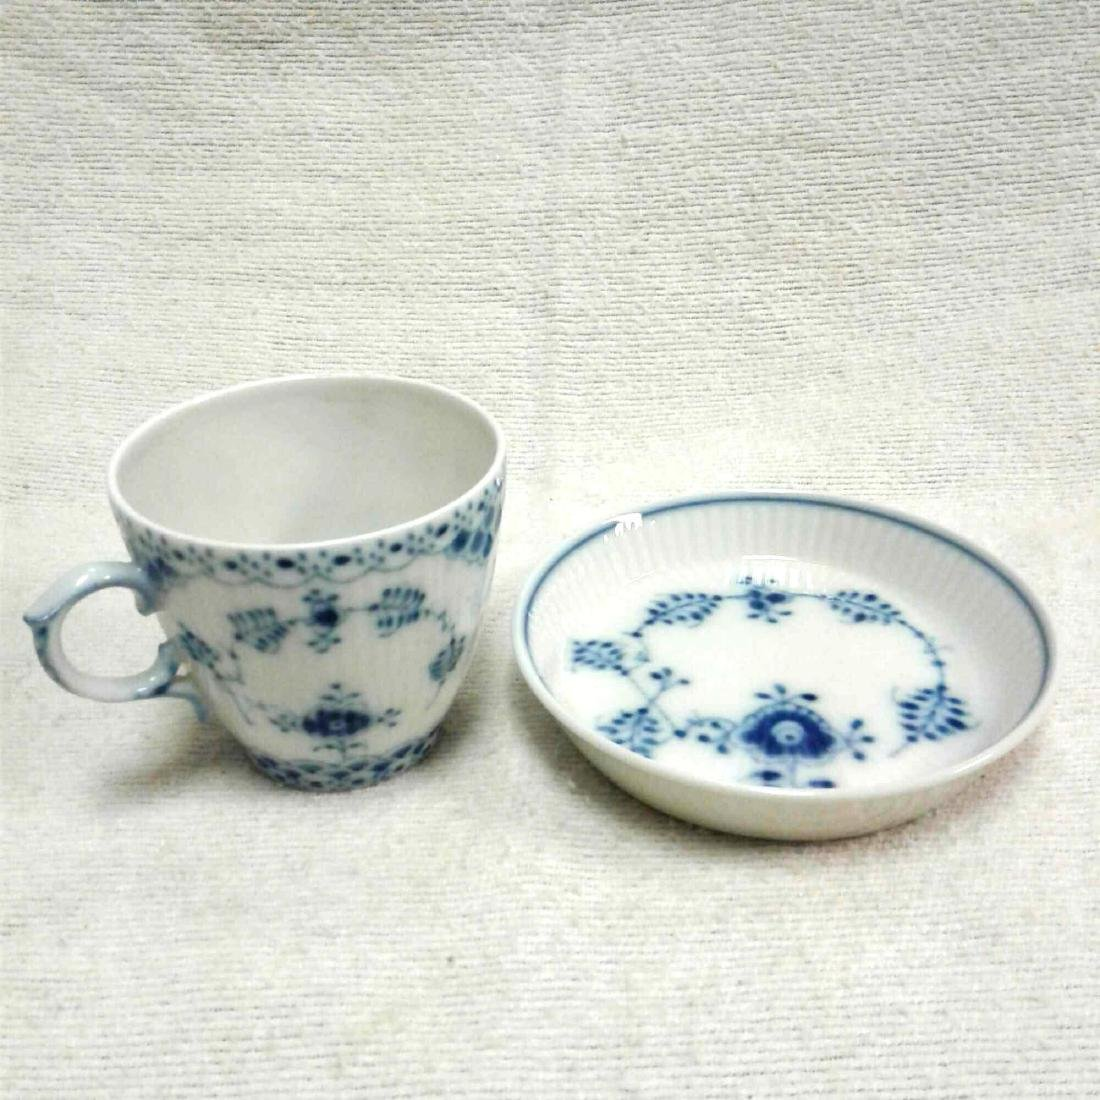 Royal Copenhagen Fine China Tea Cup and Saucer